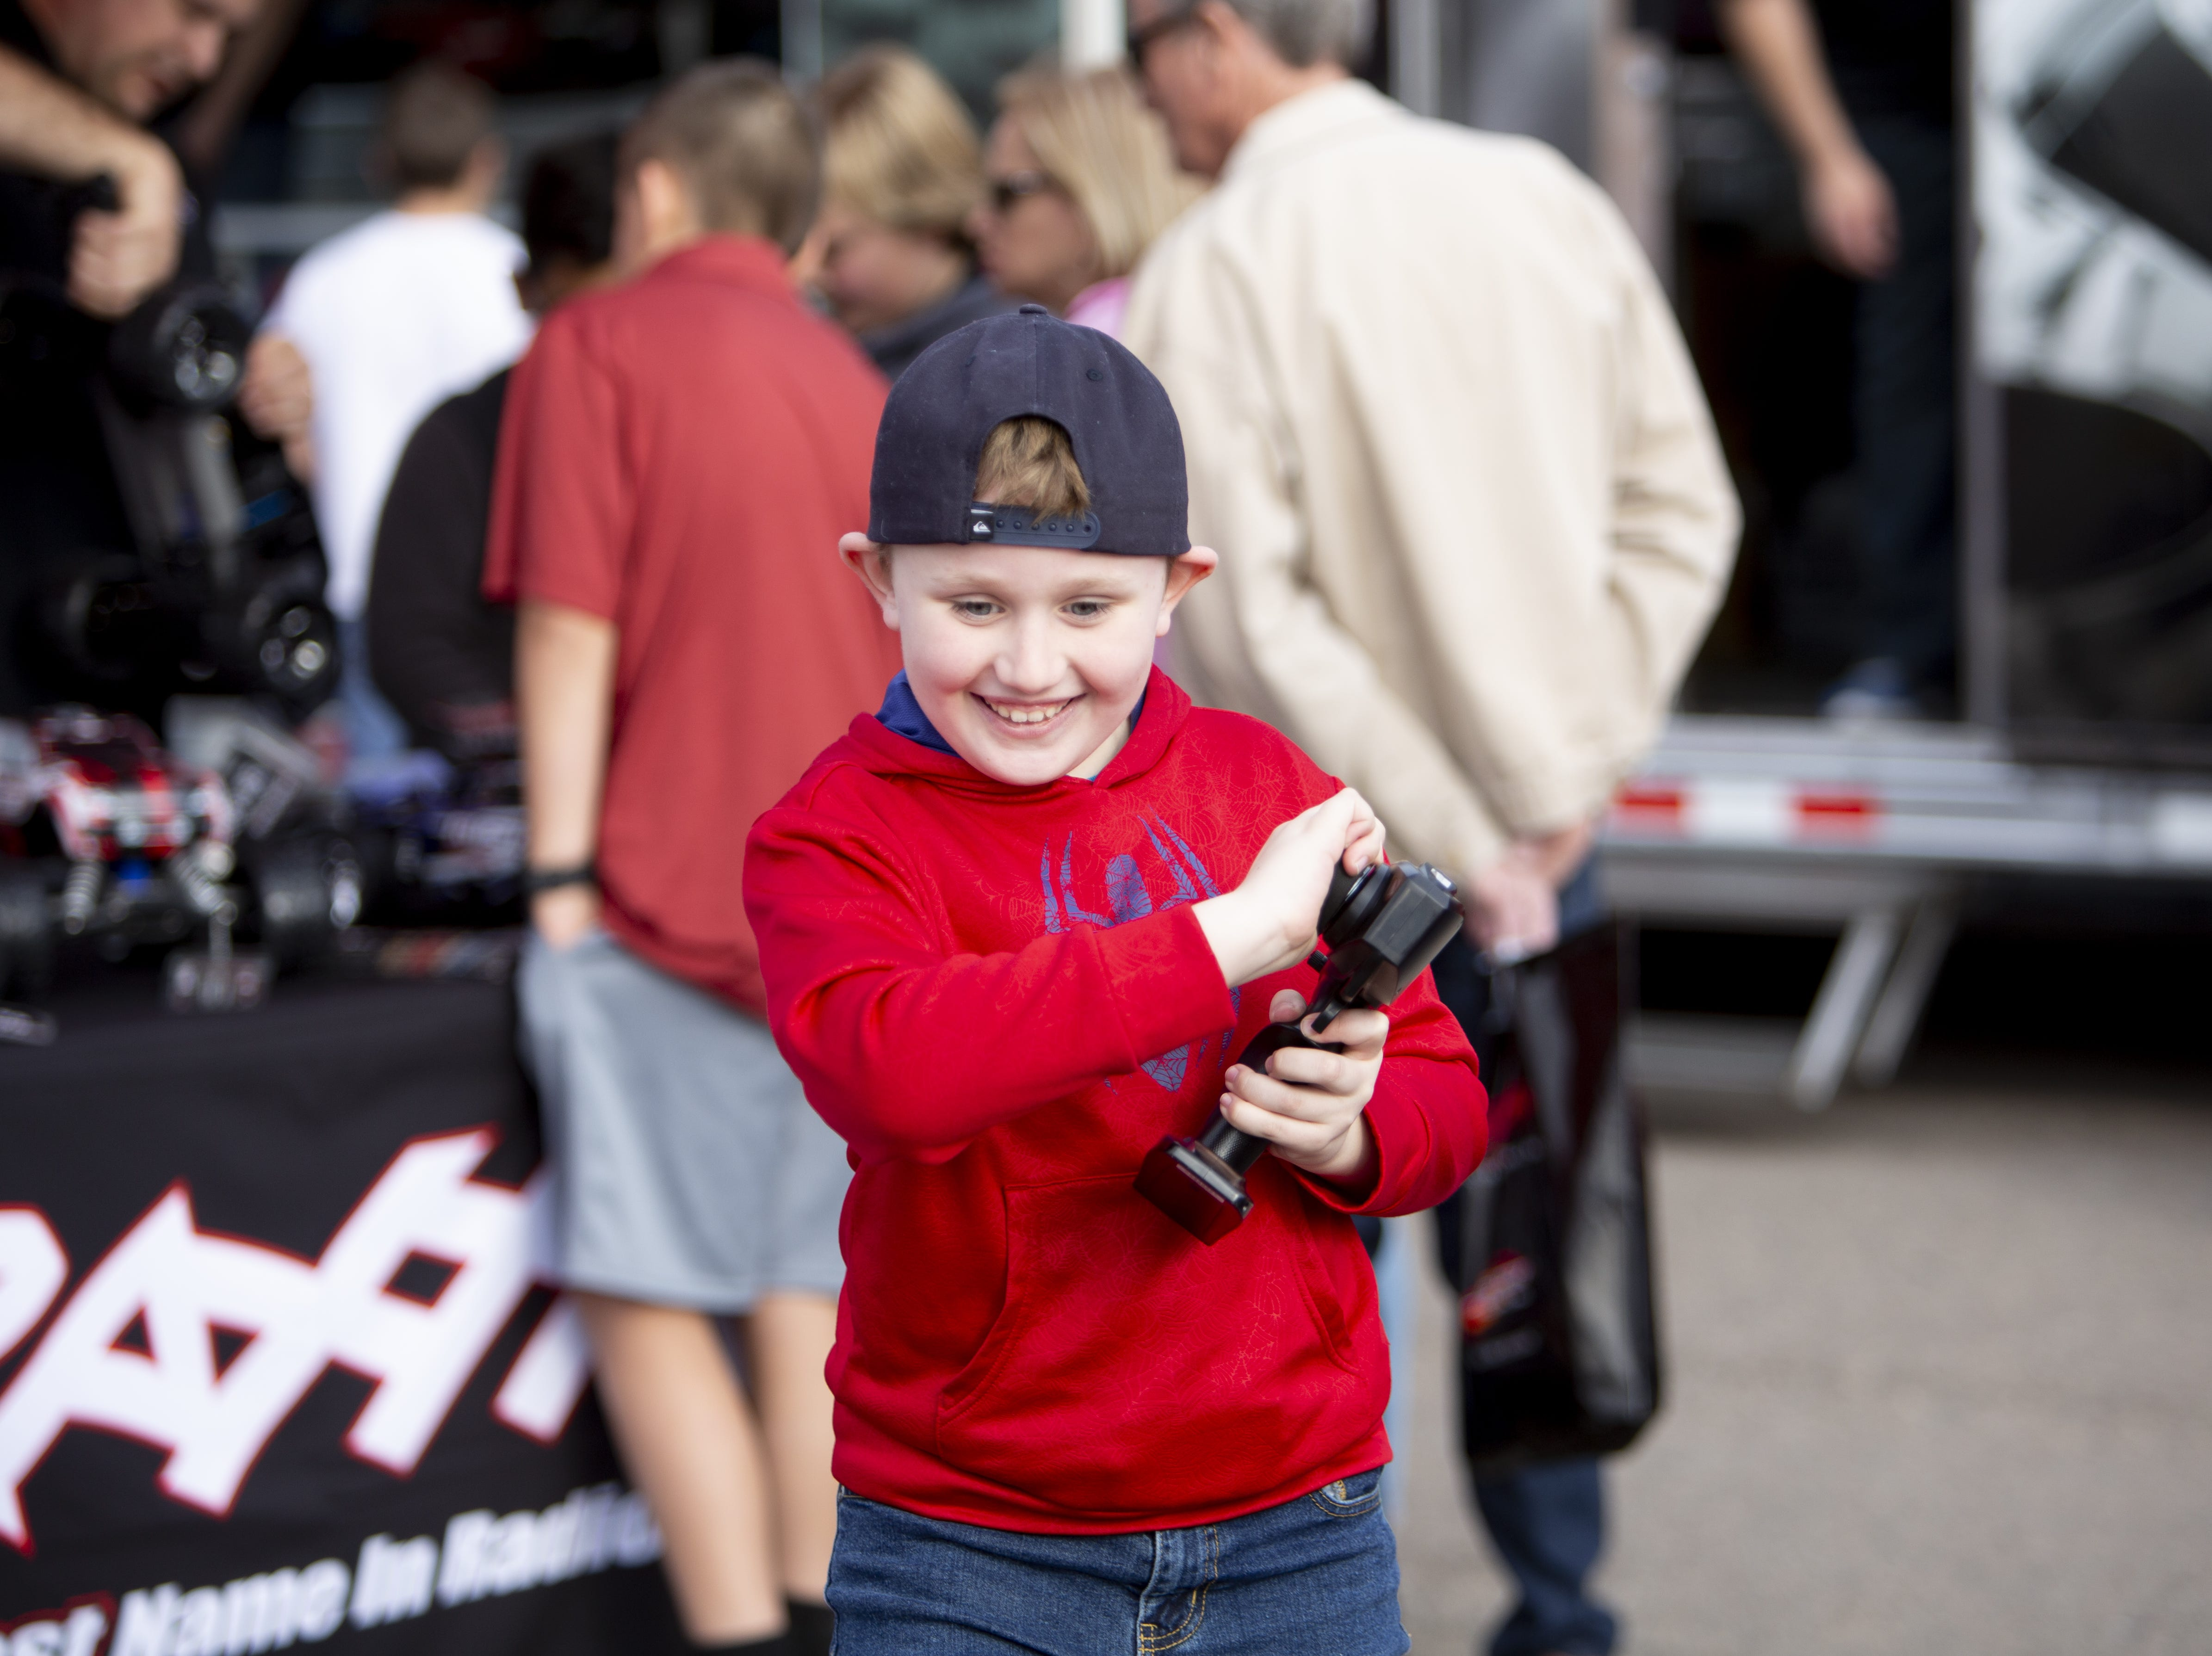 Josh Peczek, 8, experiments with a Traxxas off-road remote control car at the Barrett-Jackson Car Auction on Jan. 12, the first day of the event.